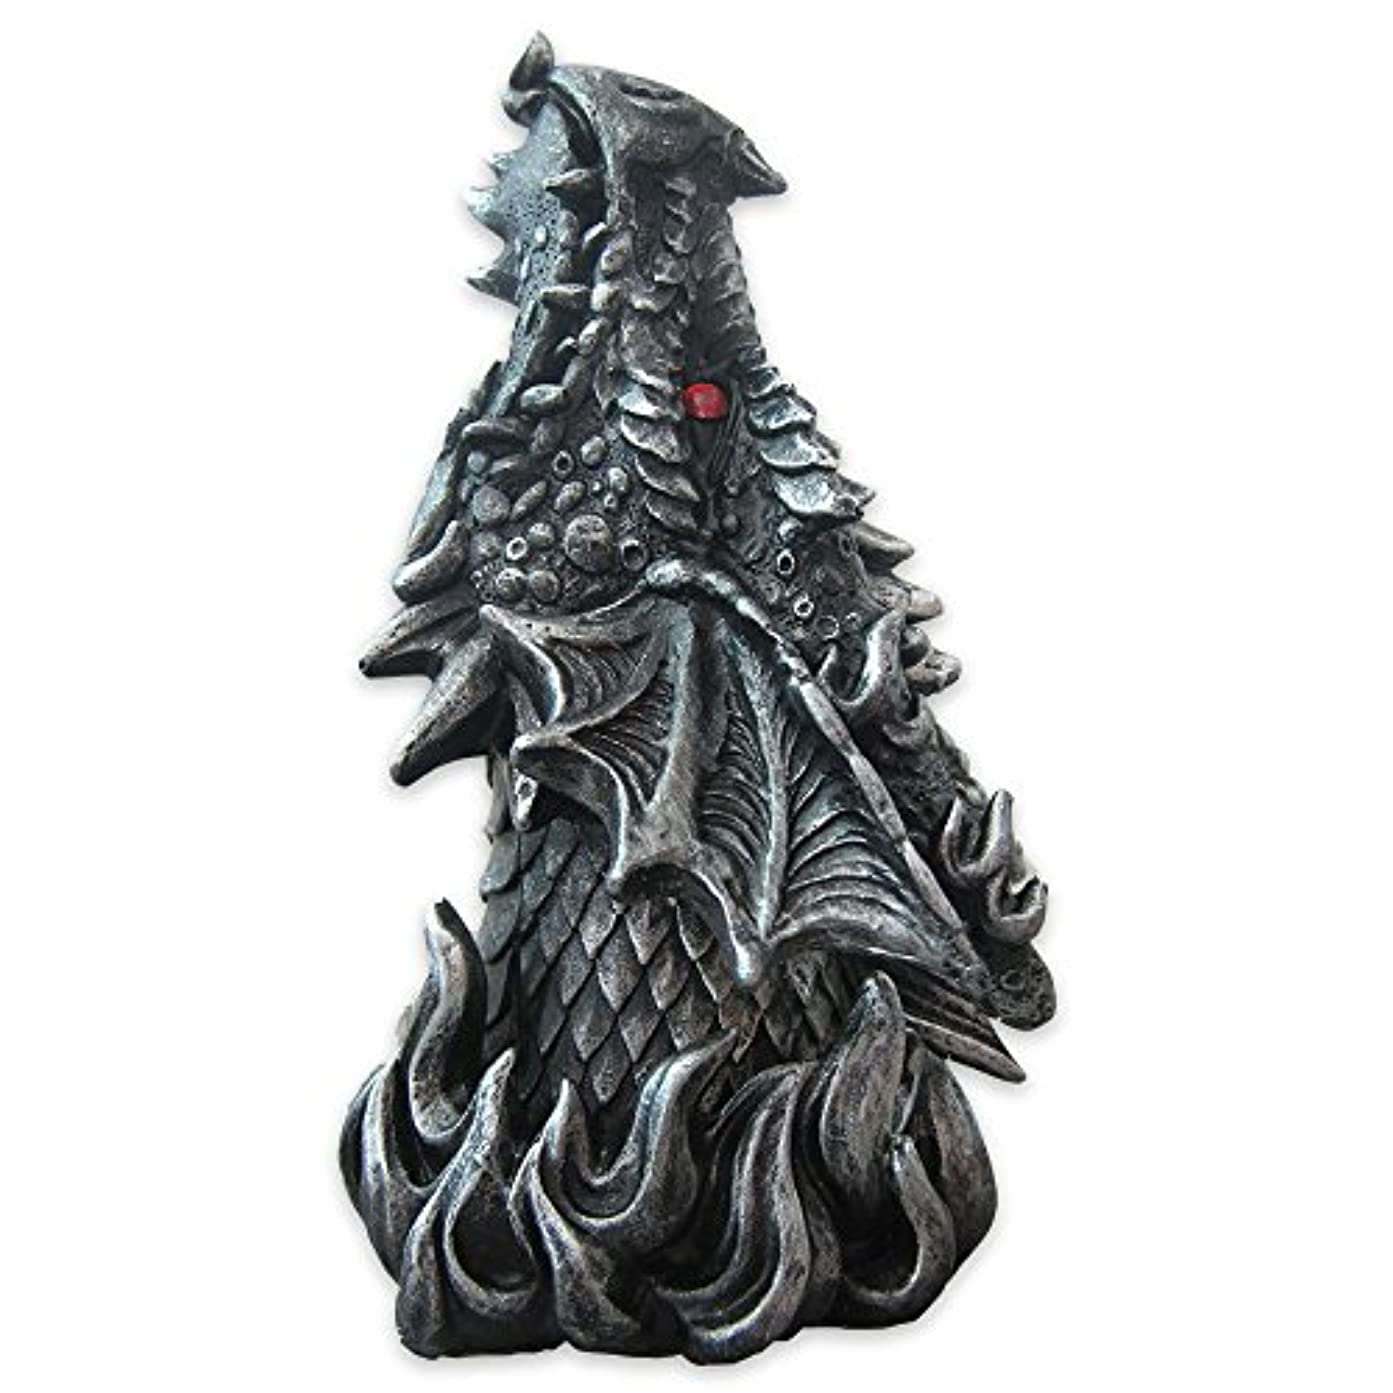 エネルギーアウトドアじゃがいもDragon Figure Cone Incense Burner Fiery Eyes - Gothic Smoke Breathing Decor